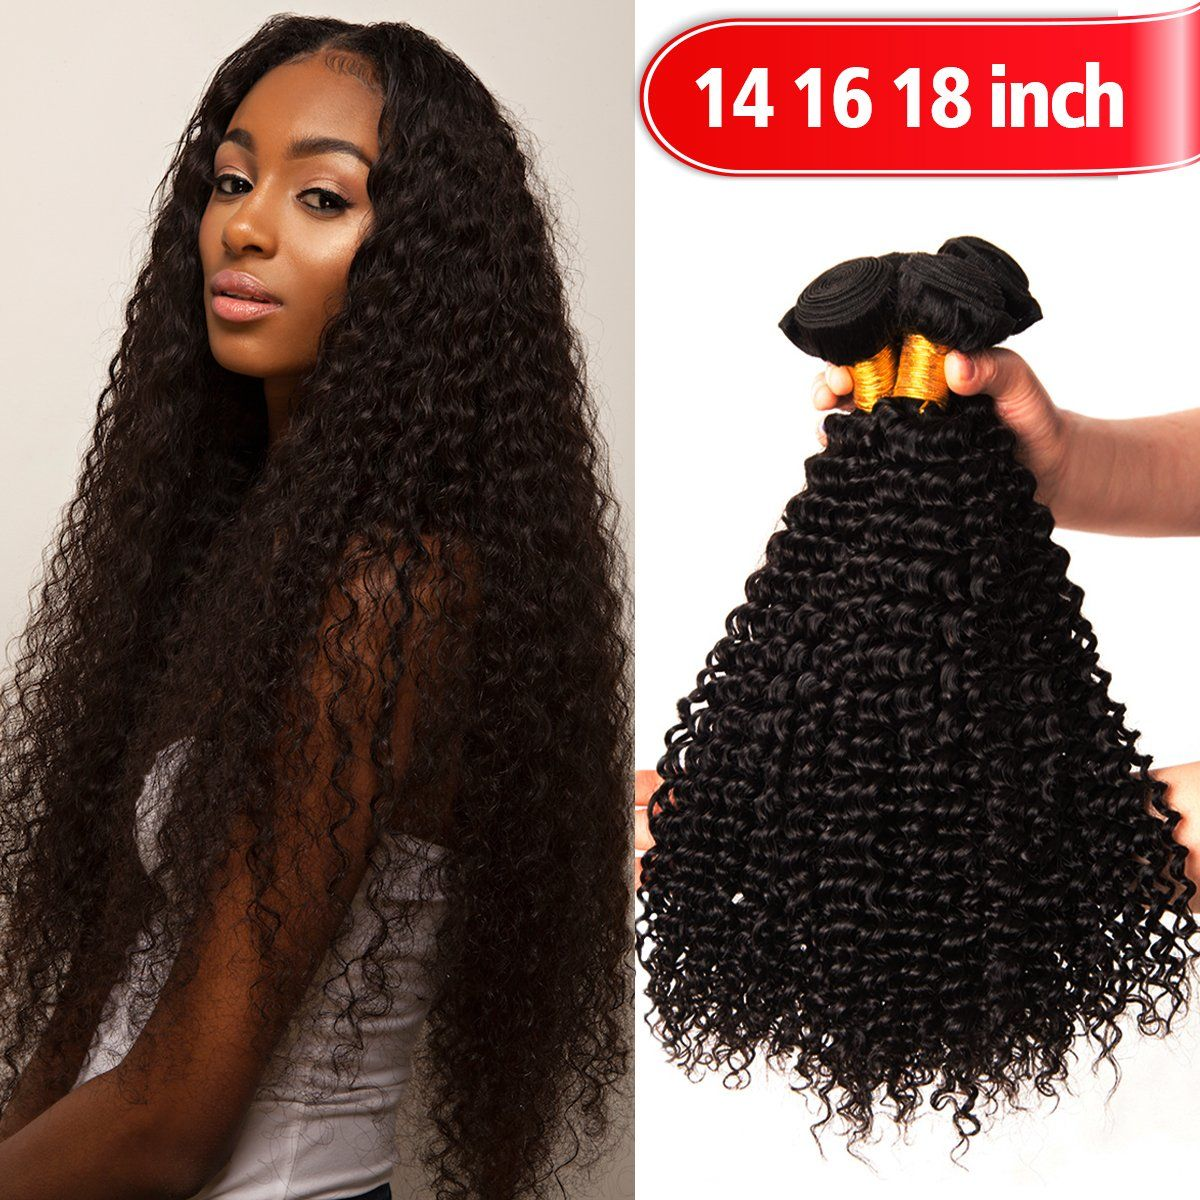 Youfa Virgin Hair Bundle 8a Kinky Curly Human Weave Hair Extensions